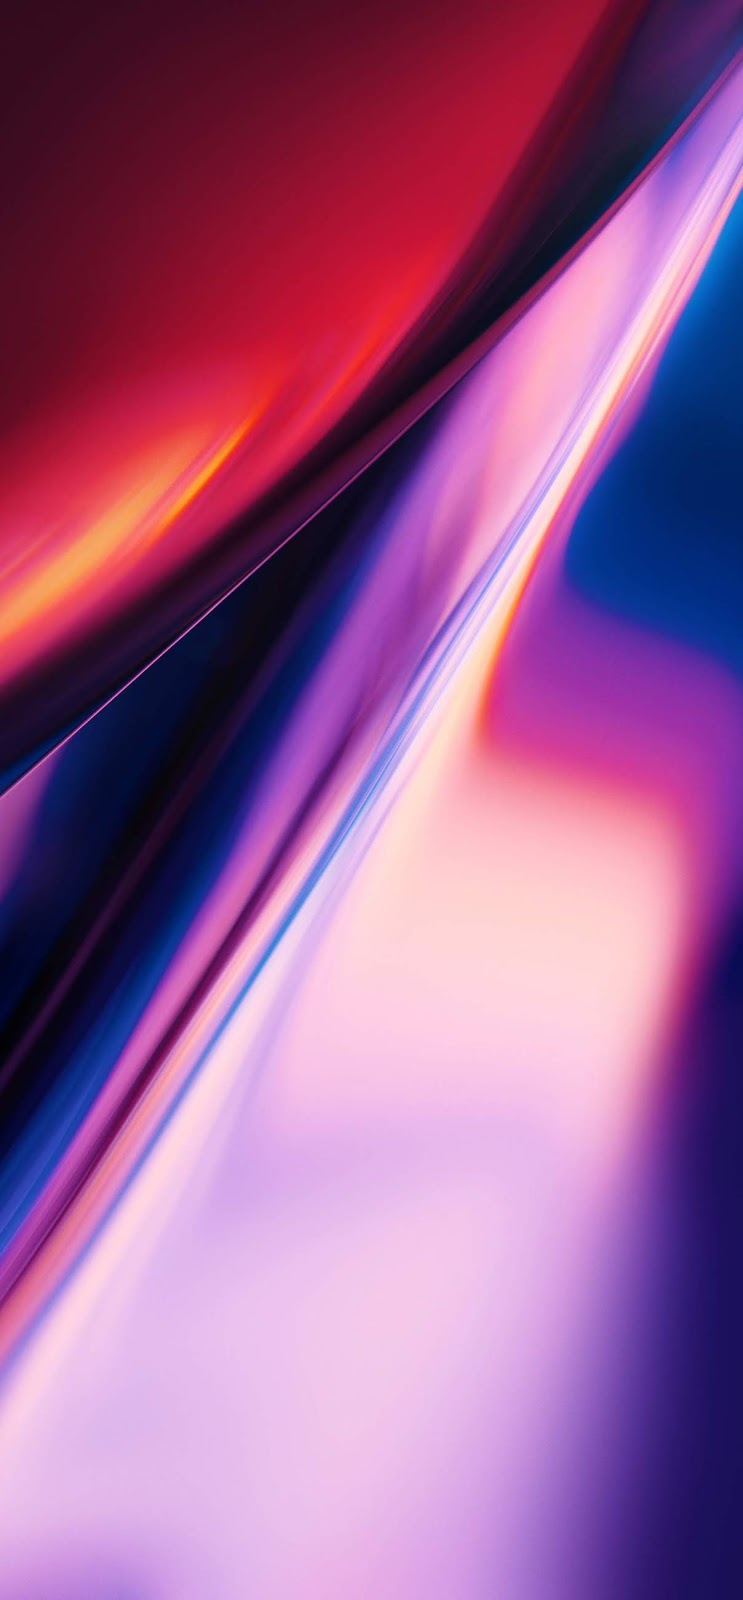 OnePlus 7 PRO Stock wallpapers